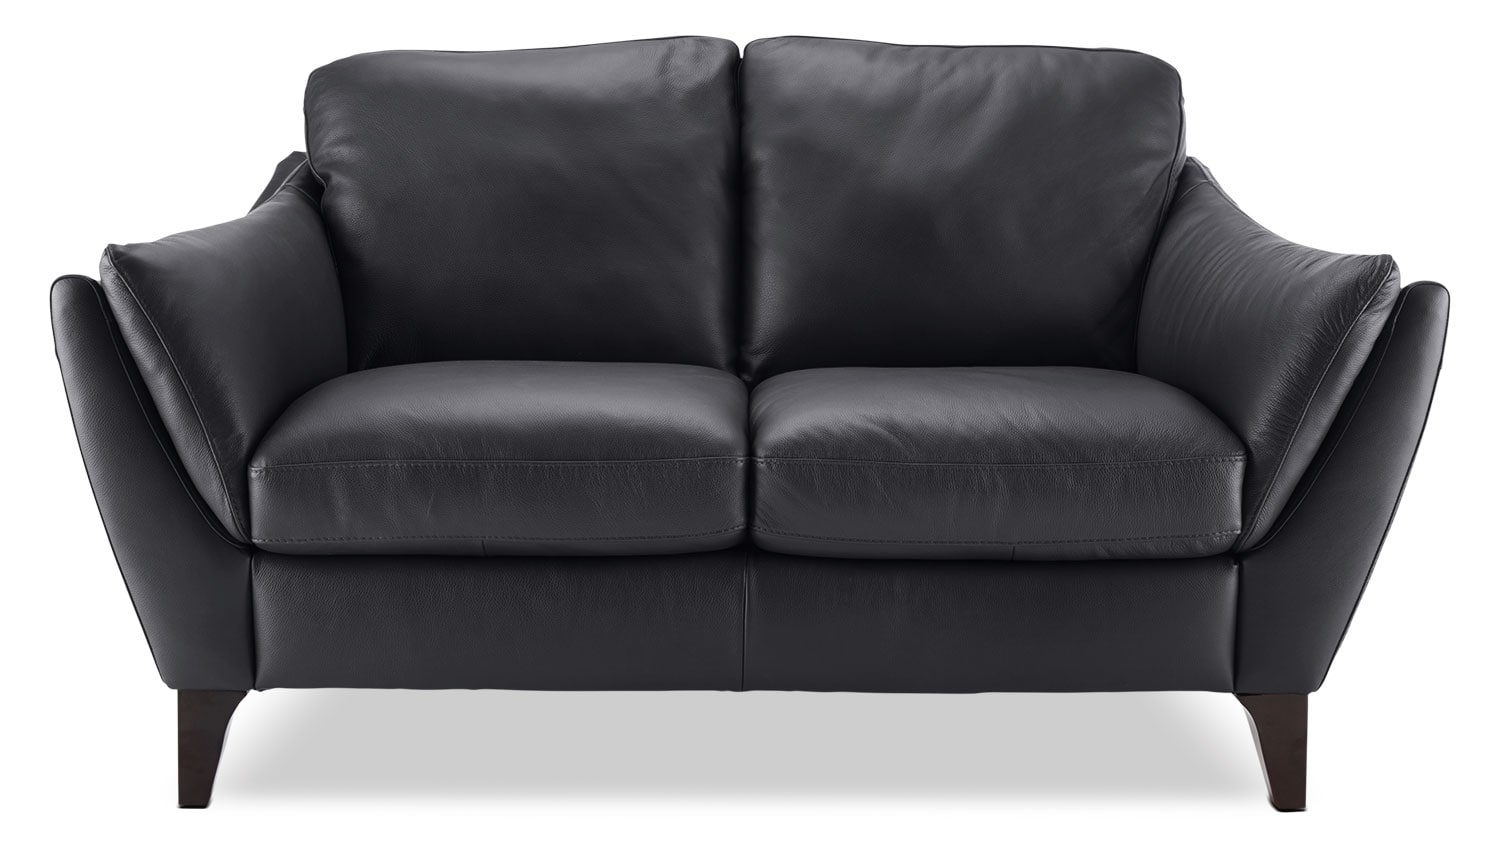 Living Room Furniture - Natuzzi Editions Denver Genuine Leather Loveseat – Anthracite